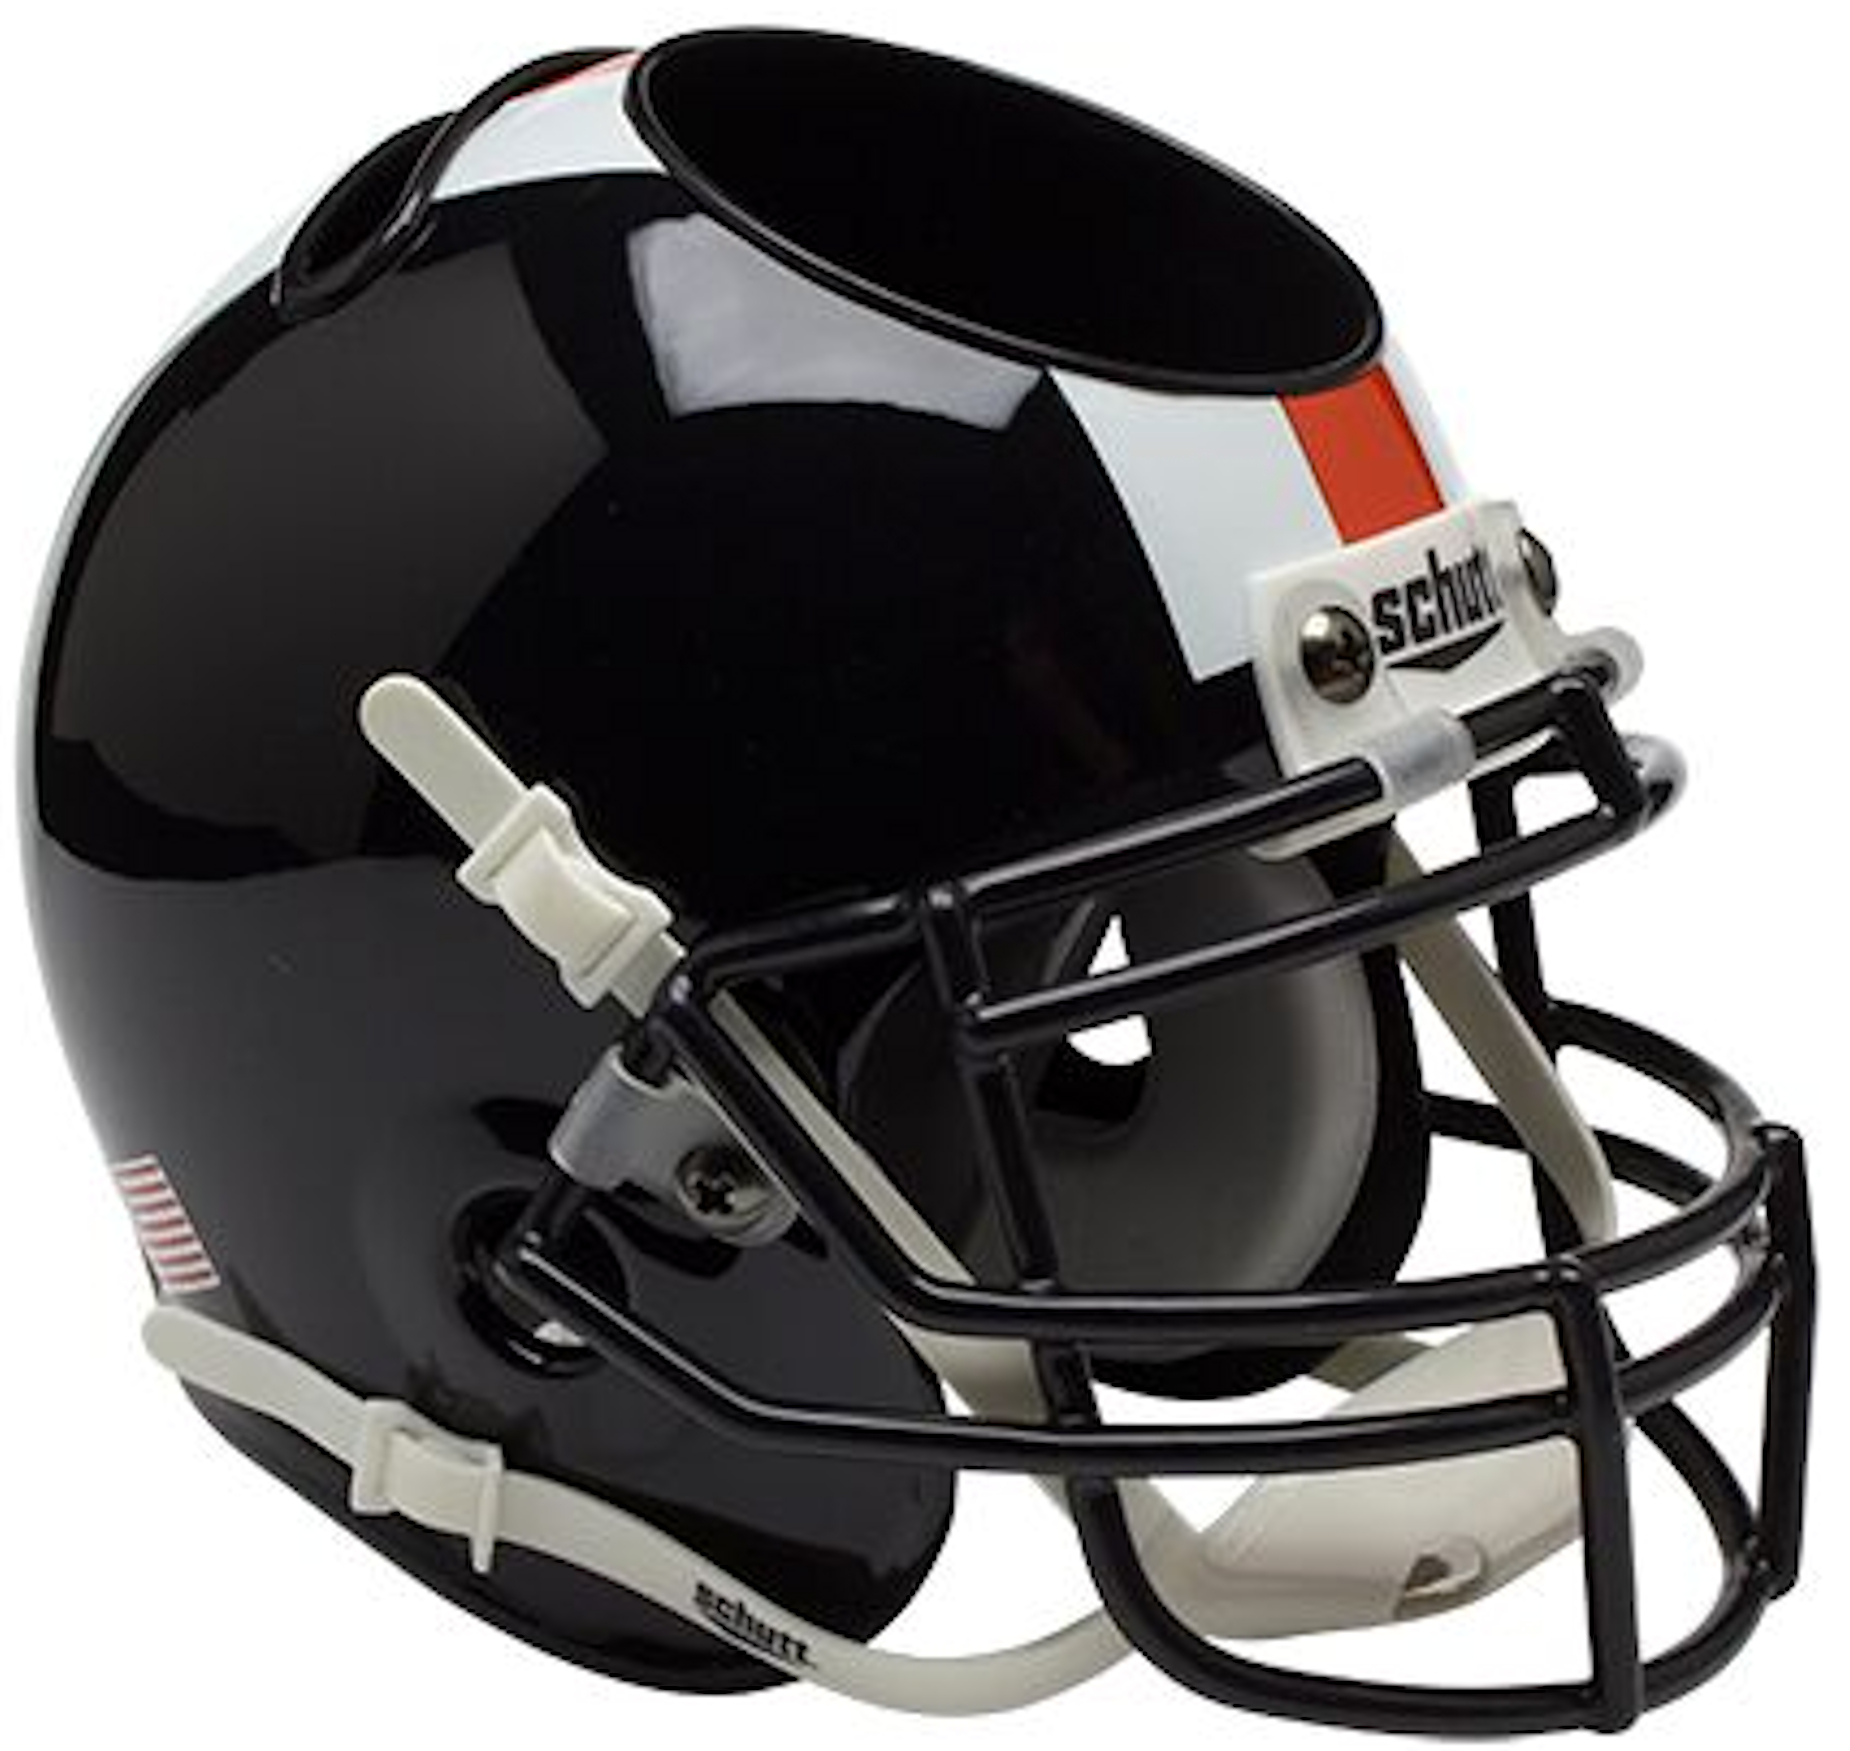 Oregon State Beavers Miniature Football Helmet Desk Caddy <B>Black w/stripes</B>